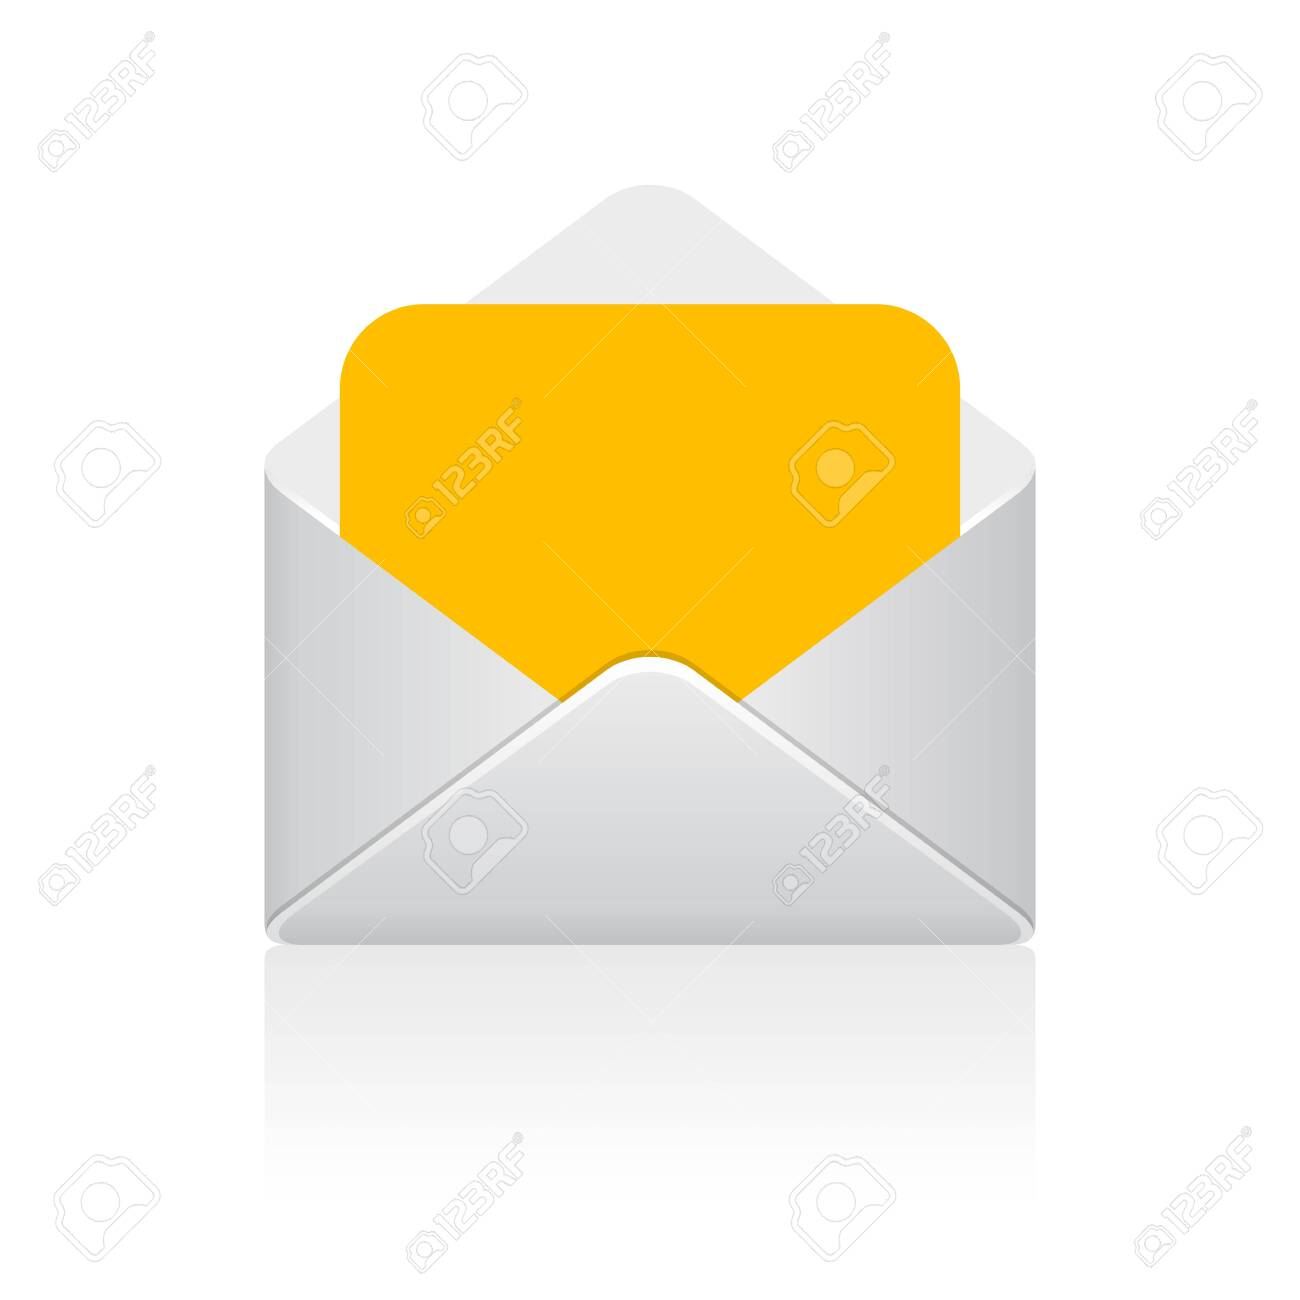 Open envelope letter vector icon isolated on white background - 136988794